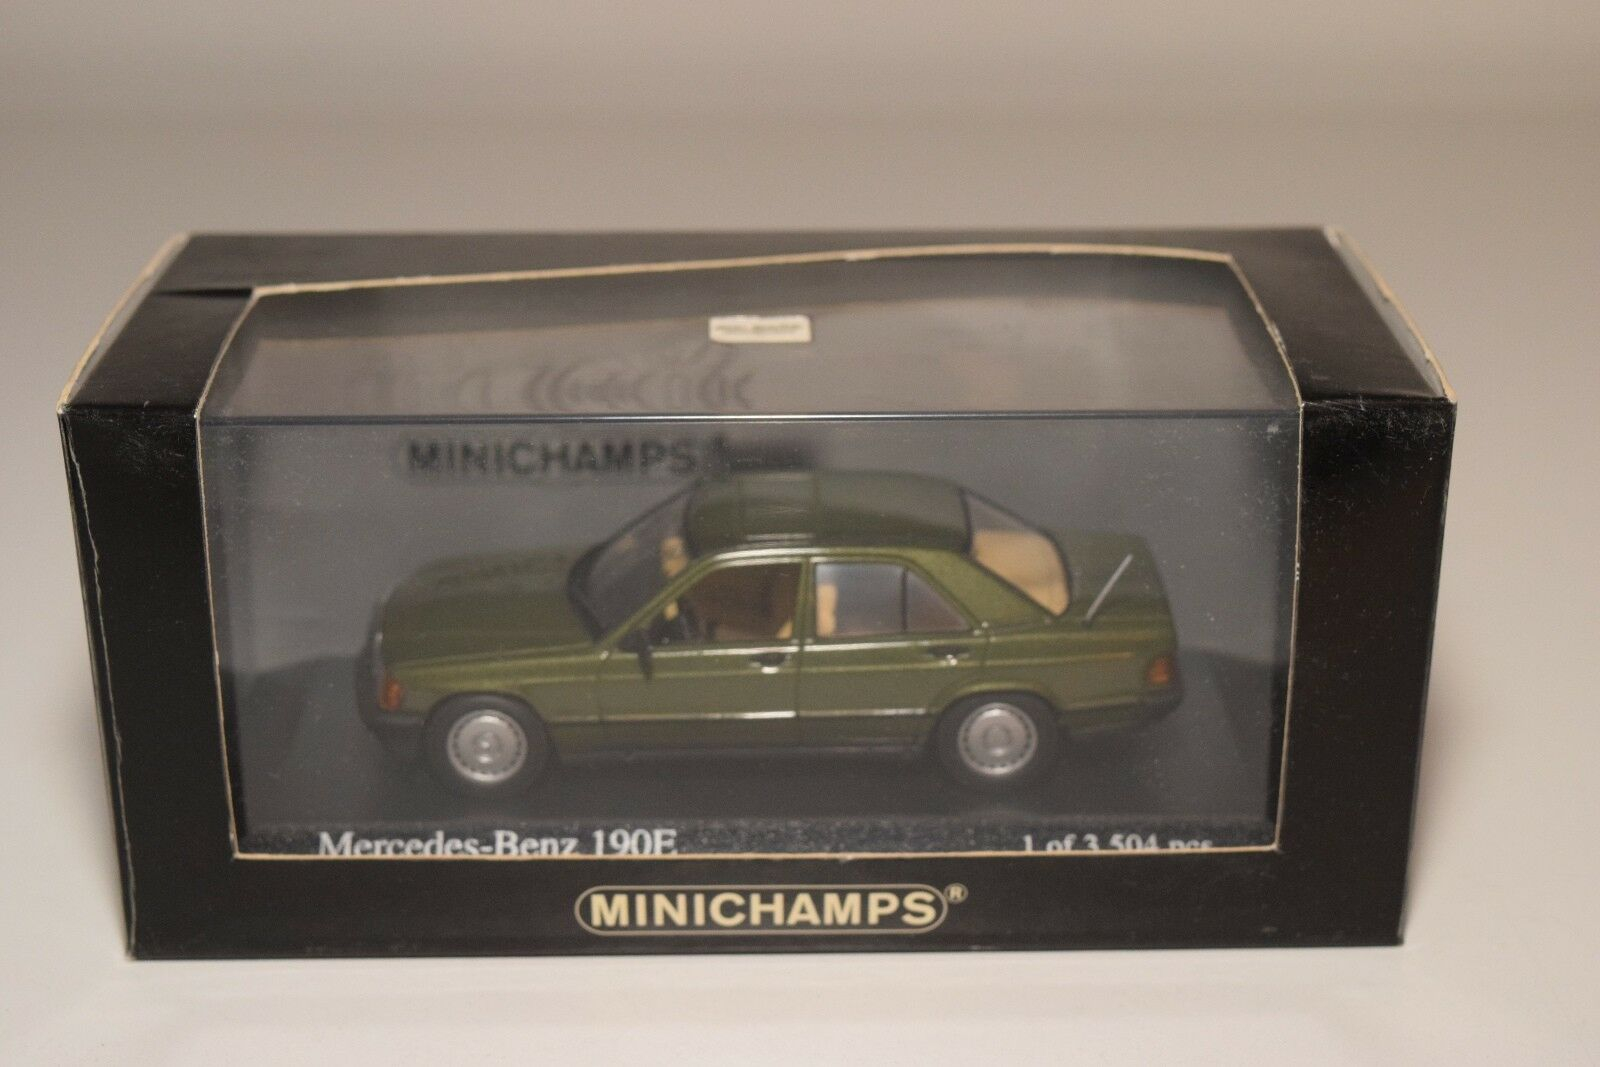 F MINICHAMPS MERCEDES-BENZ 190E 190 E 1984 METALLIC Grün MINT BOXED